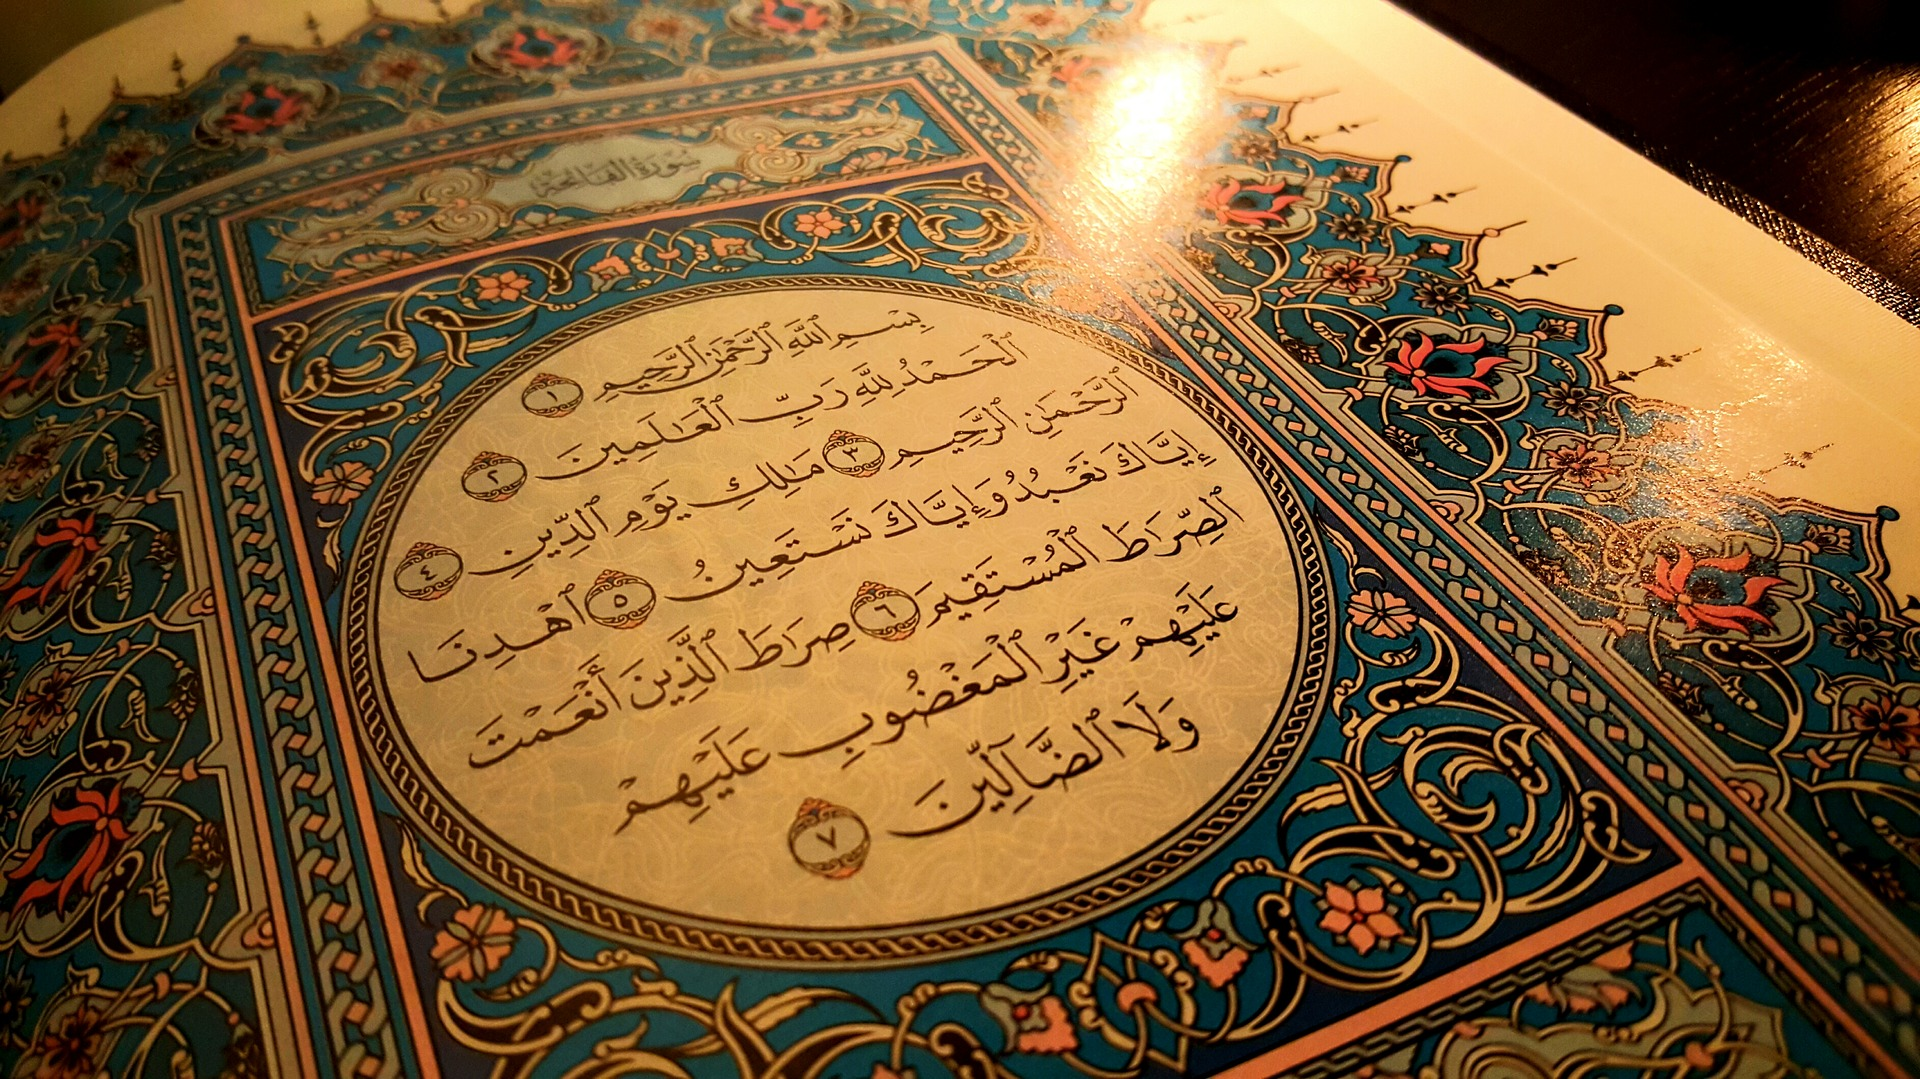 Photo of the first page of the Qur